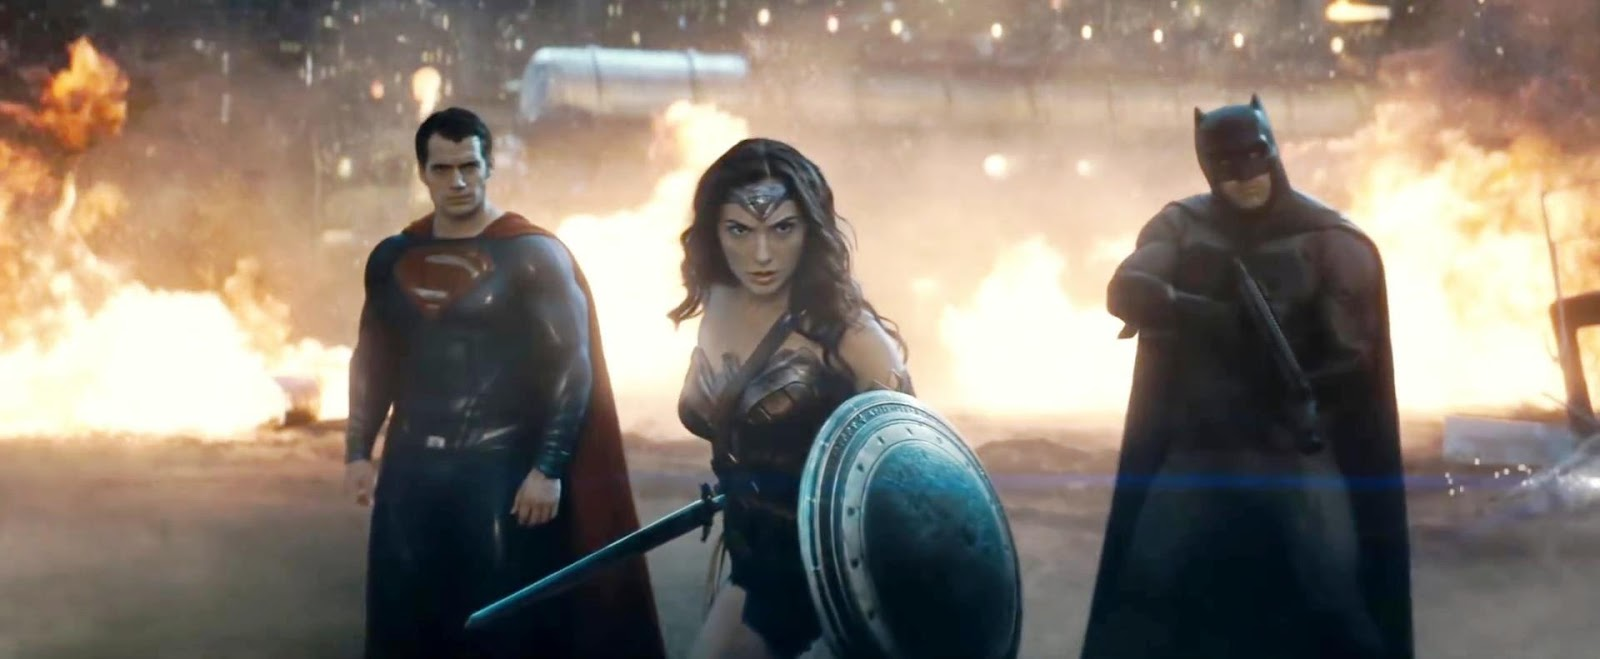 8981a92d78a Batman v Superman: Dawn of Justice follows on directly from Zack Snyder's  grand, underrated 2013 take on Superman, Man of Steel, with the immediately  ...